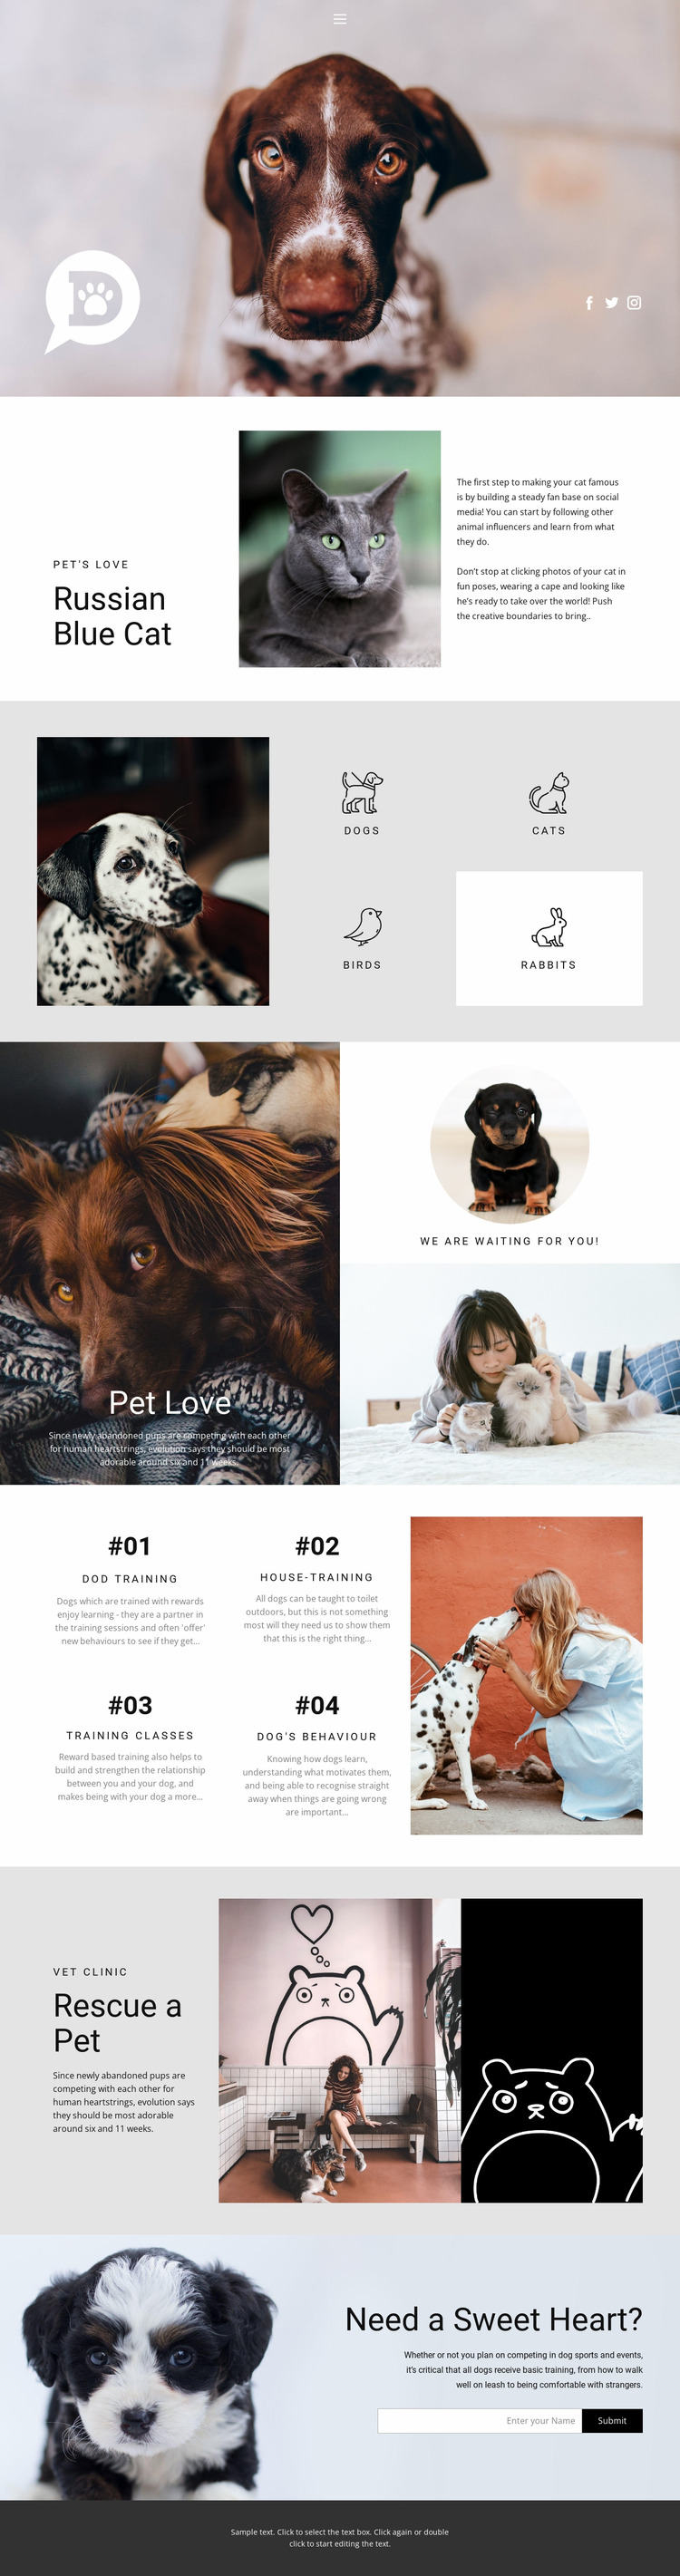 Care for pets and animals Html Website Builder